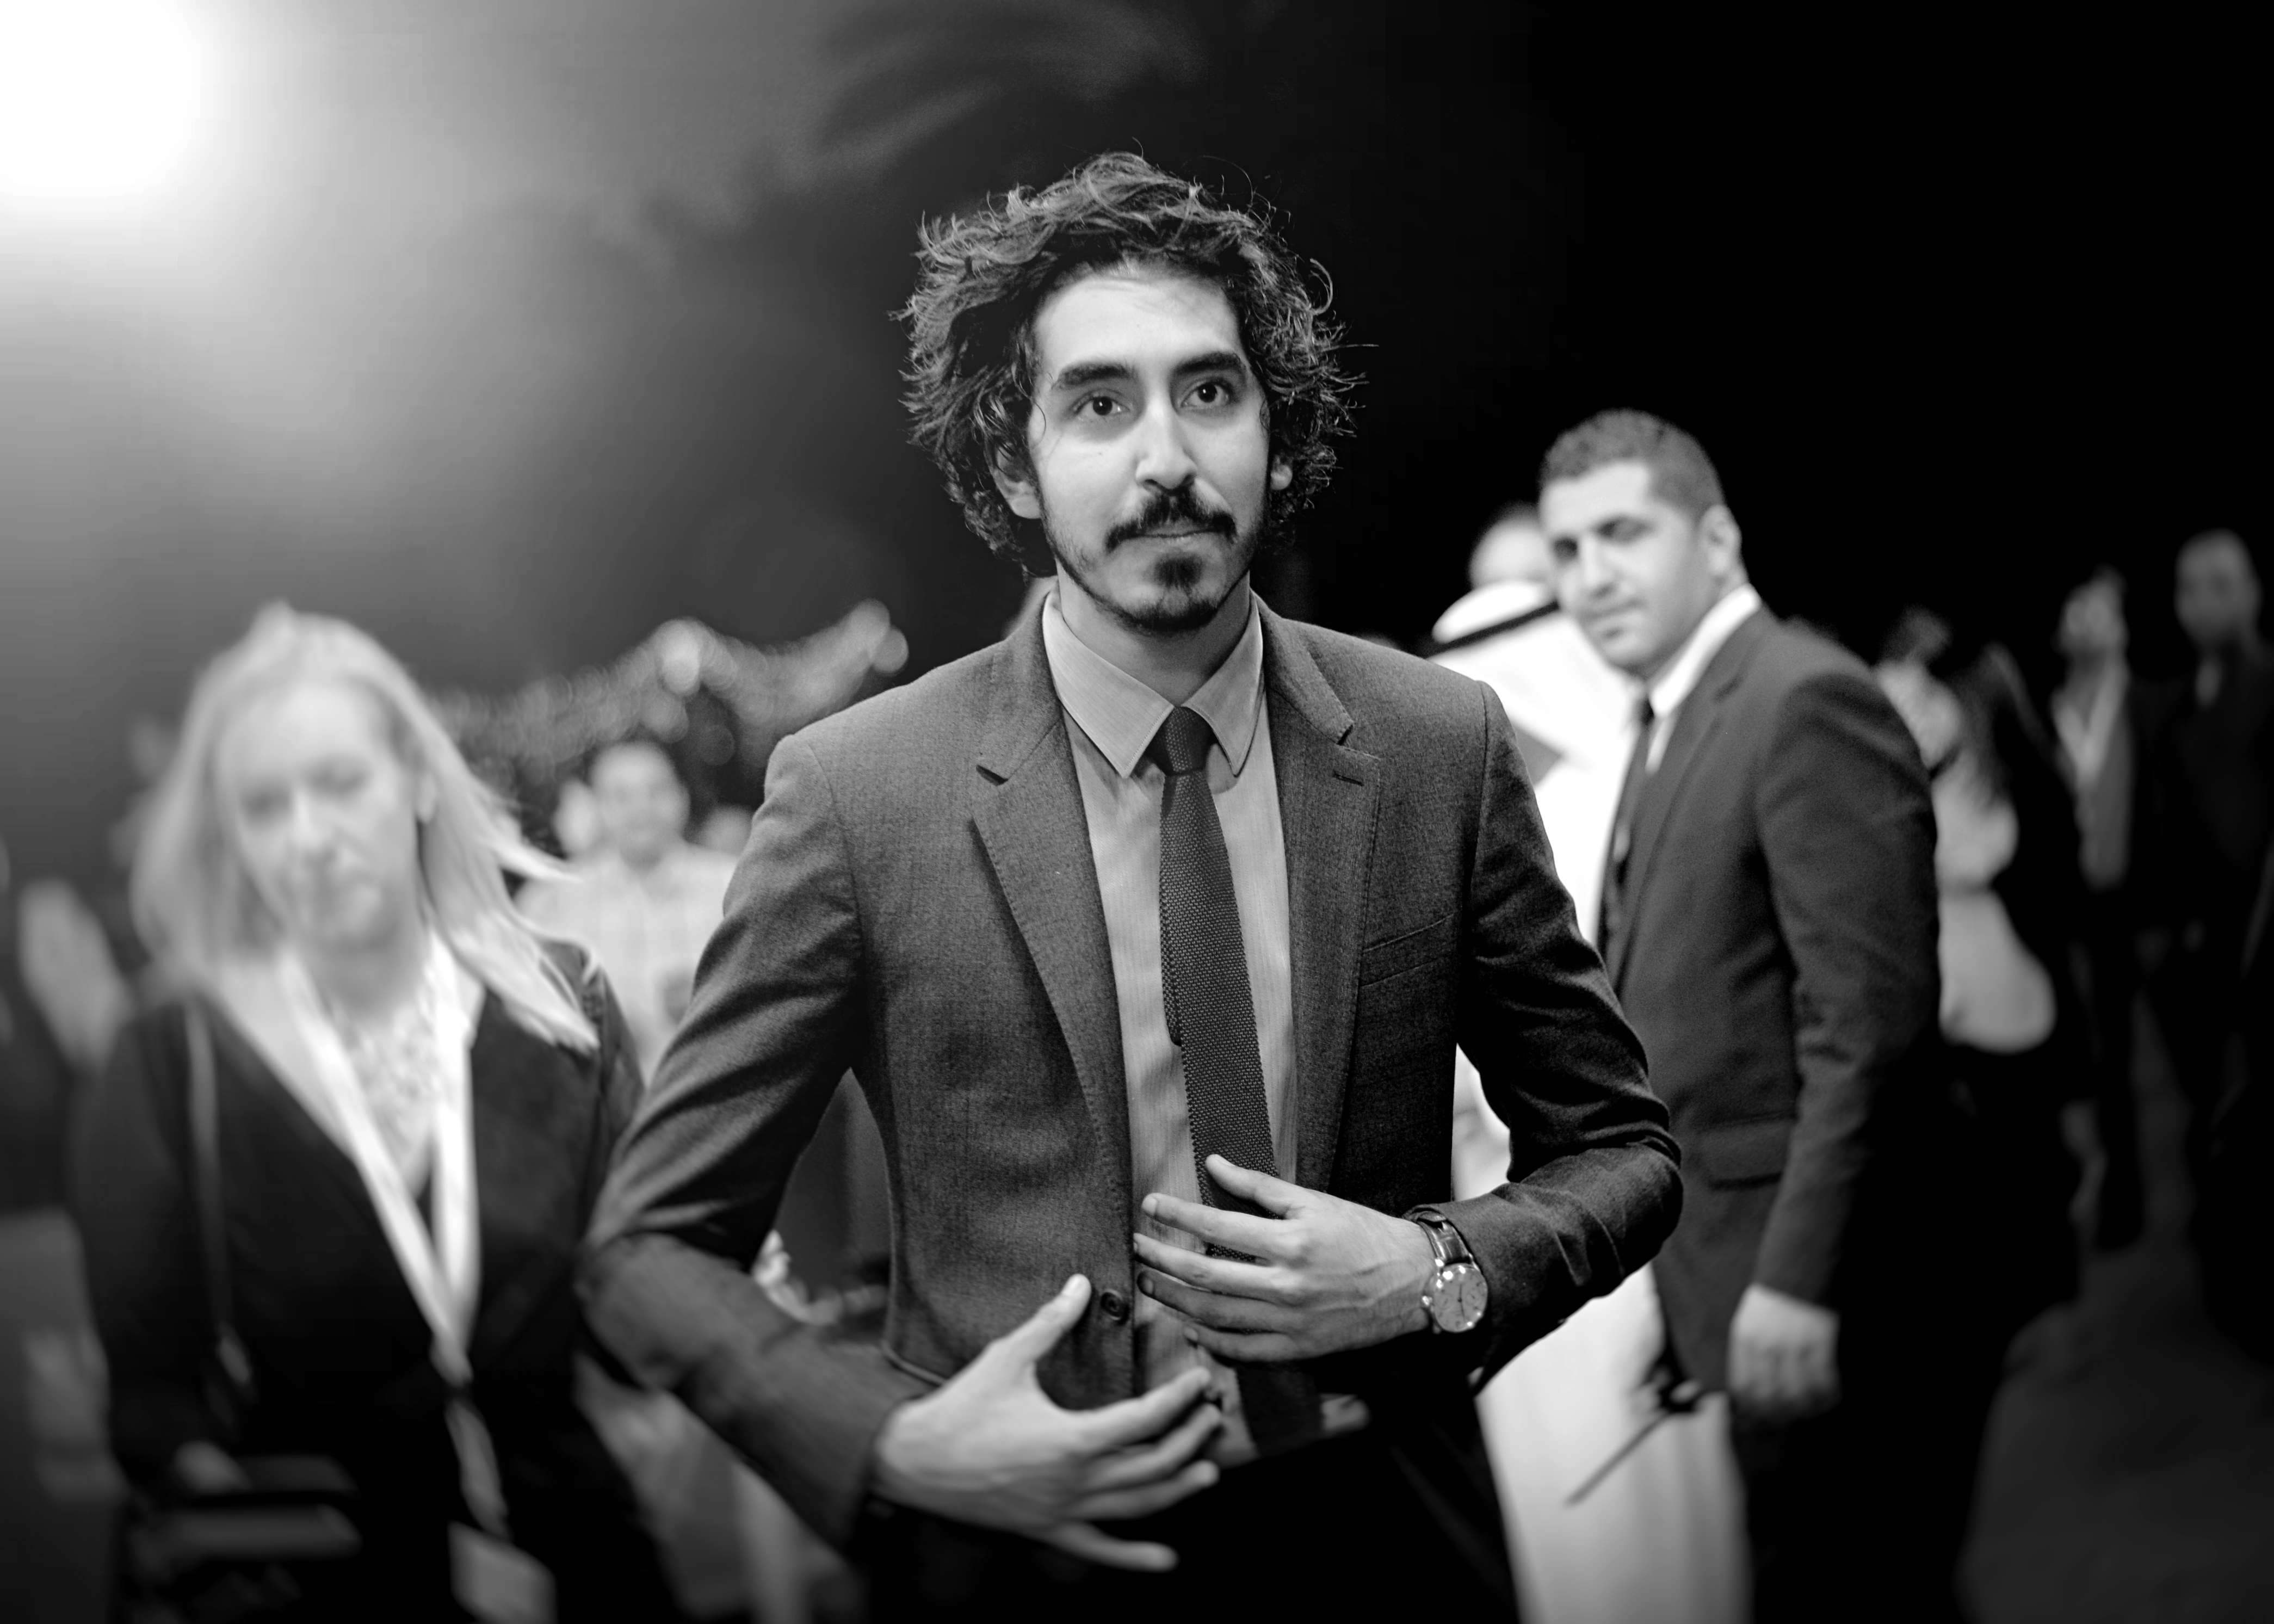 """Actor Dev Patel as he attends """"The Man Who Knew Infinity"""" premiere during day four of the 12th annual Dubai International Film Festival held in Dubai, United Arab Emirates."""